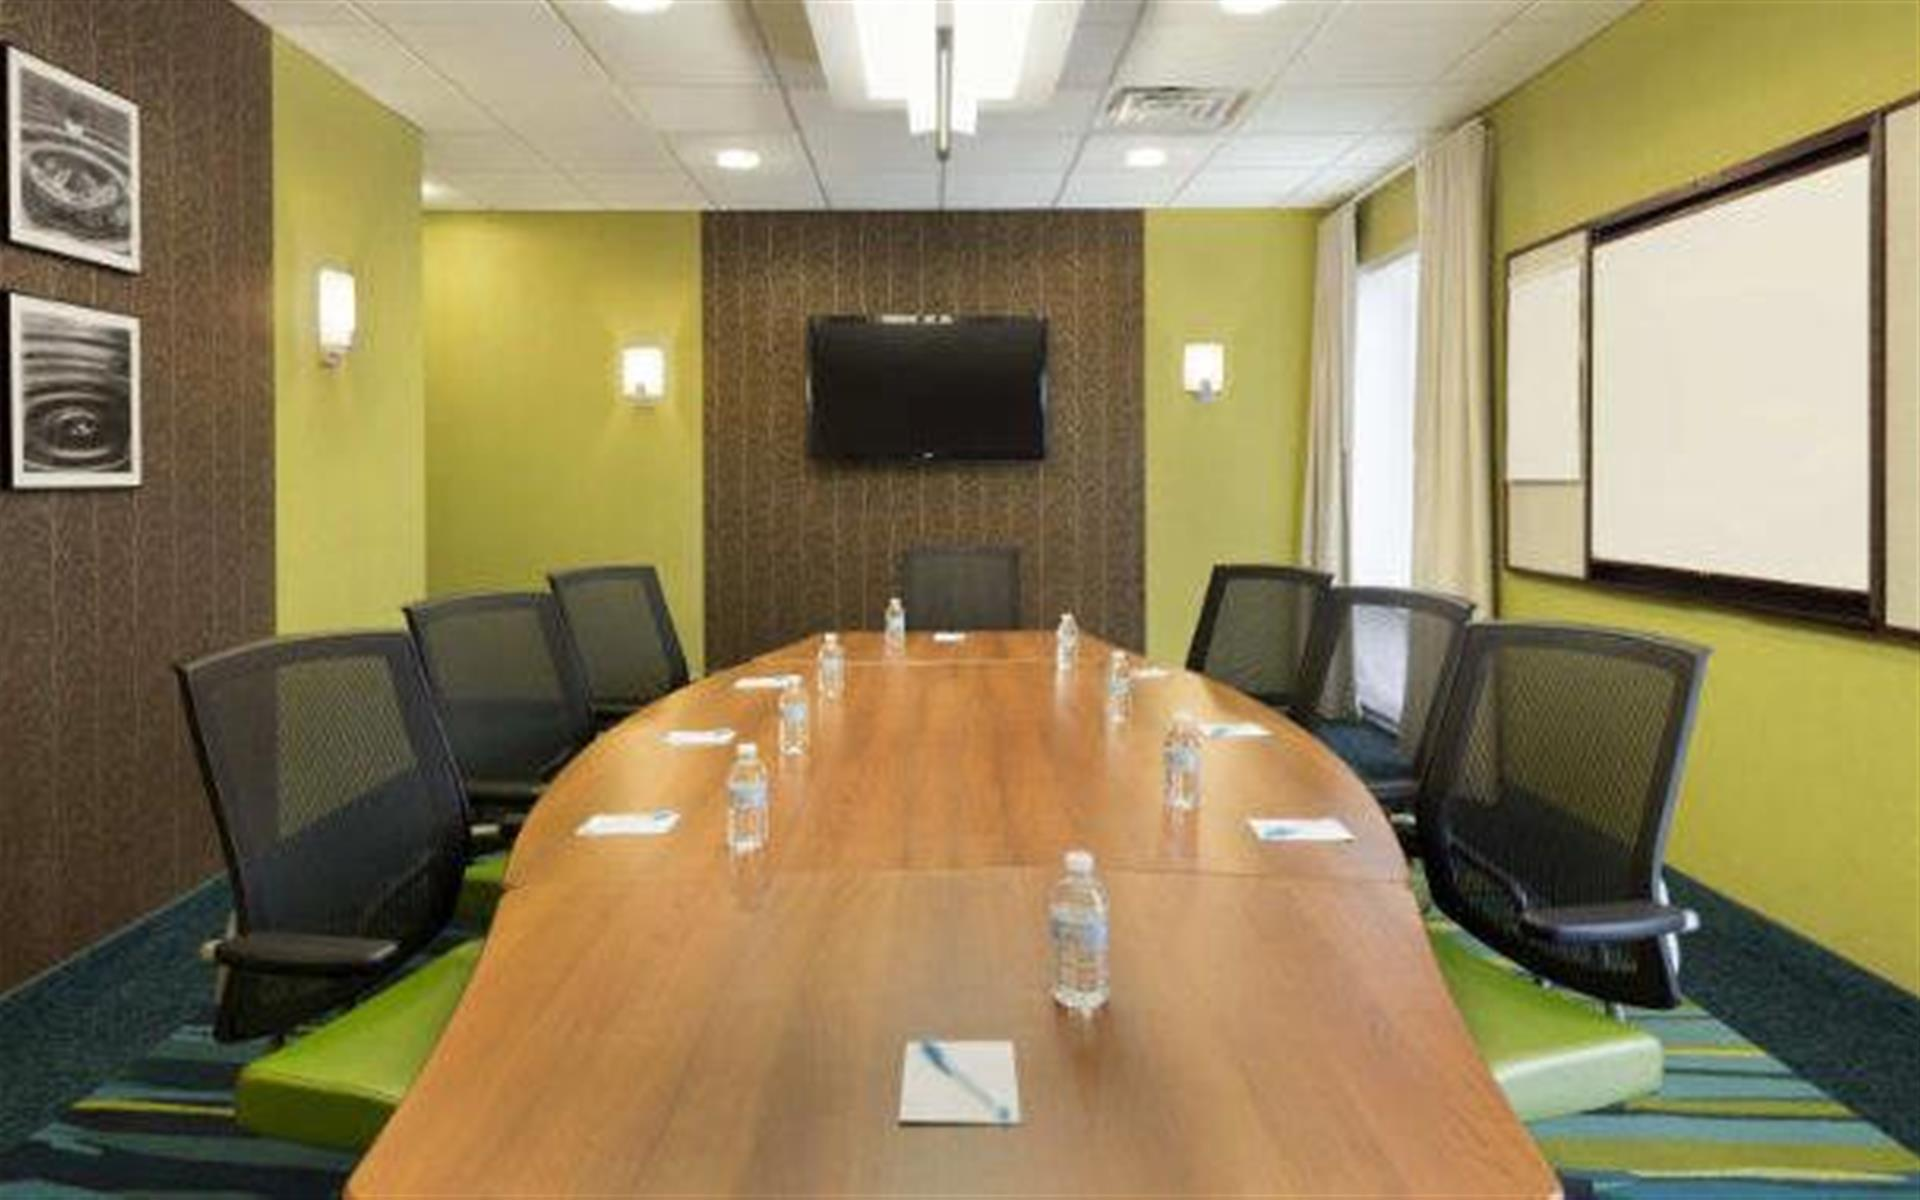 SpringHill Suites by Marriott Philadelphia Langhorne - The Langhorne Room